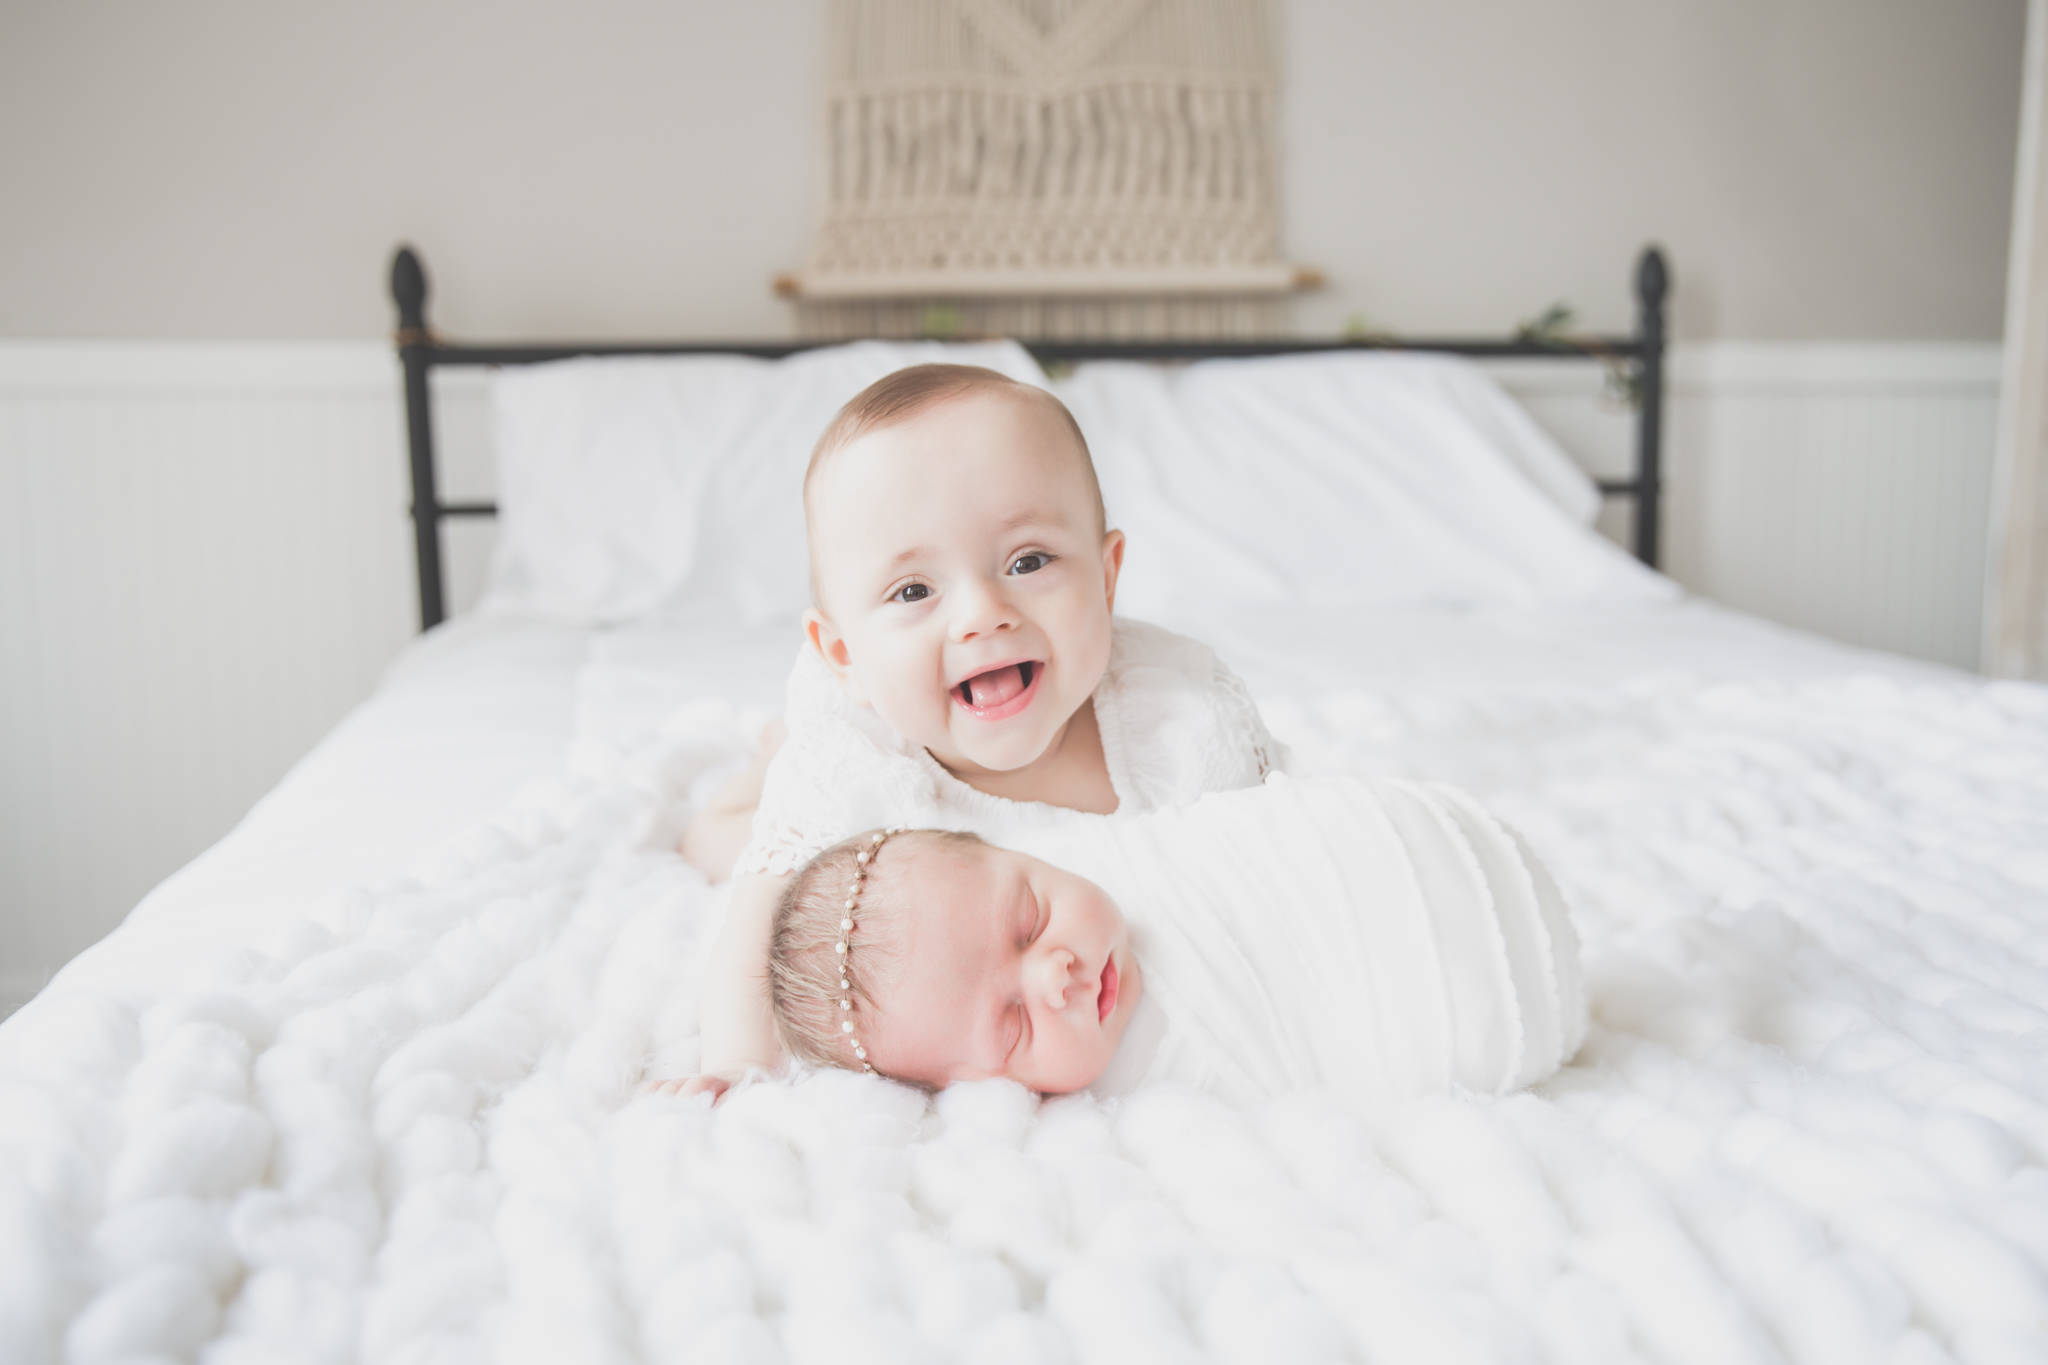 Sibling photos Newborn session photographer lifestyle studio - Cara Peterson Photography Rockford IL-4-5.jpg